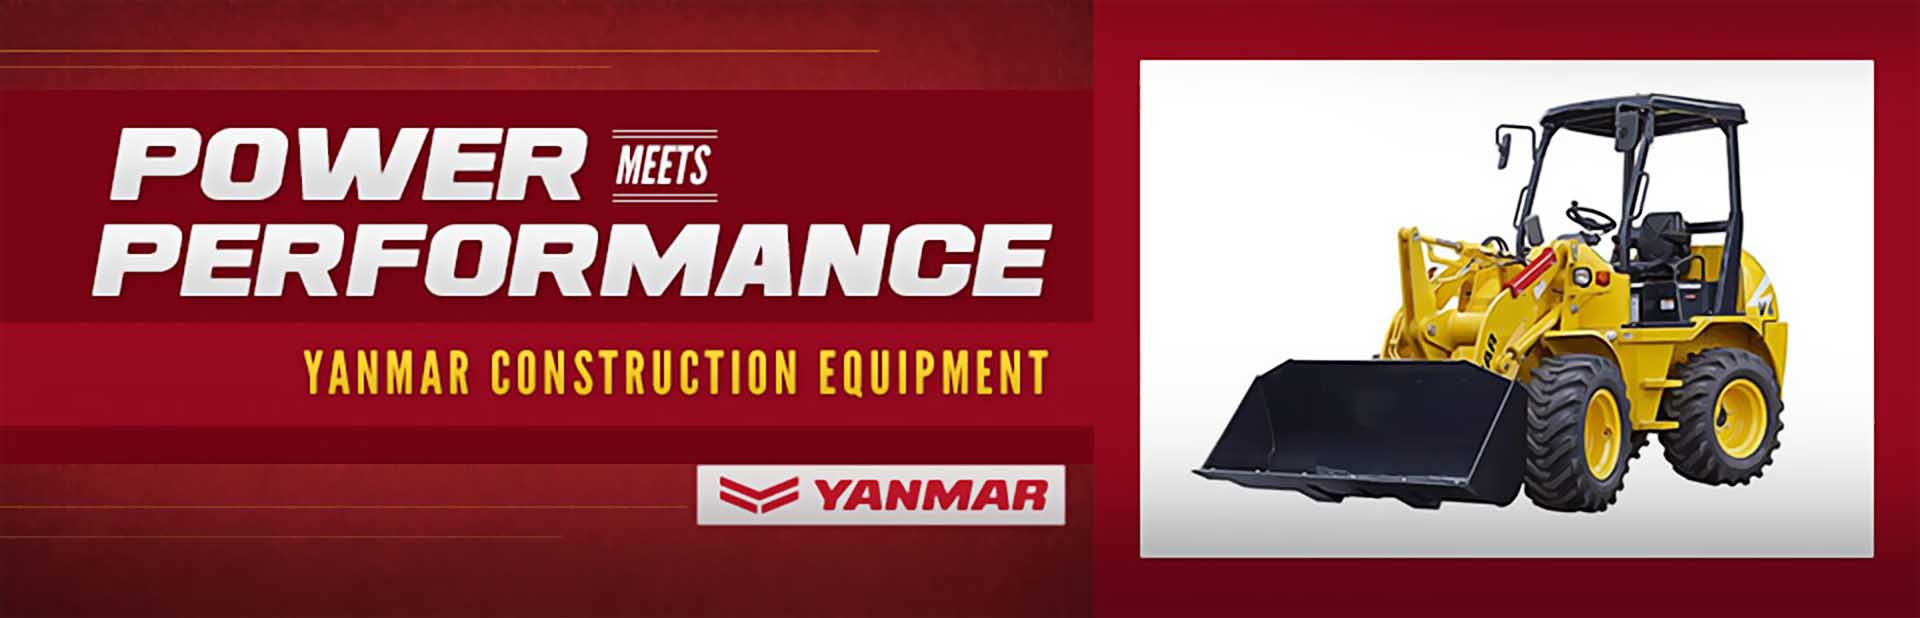 Yanmar Construction Equipment: Click here to view the models.